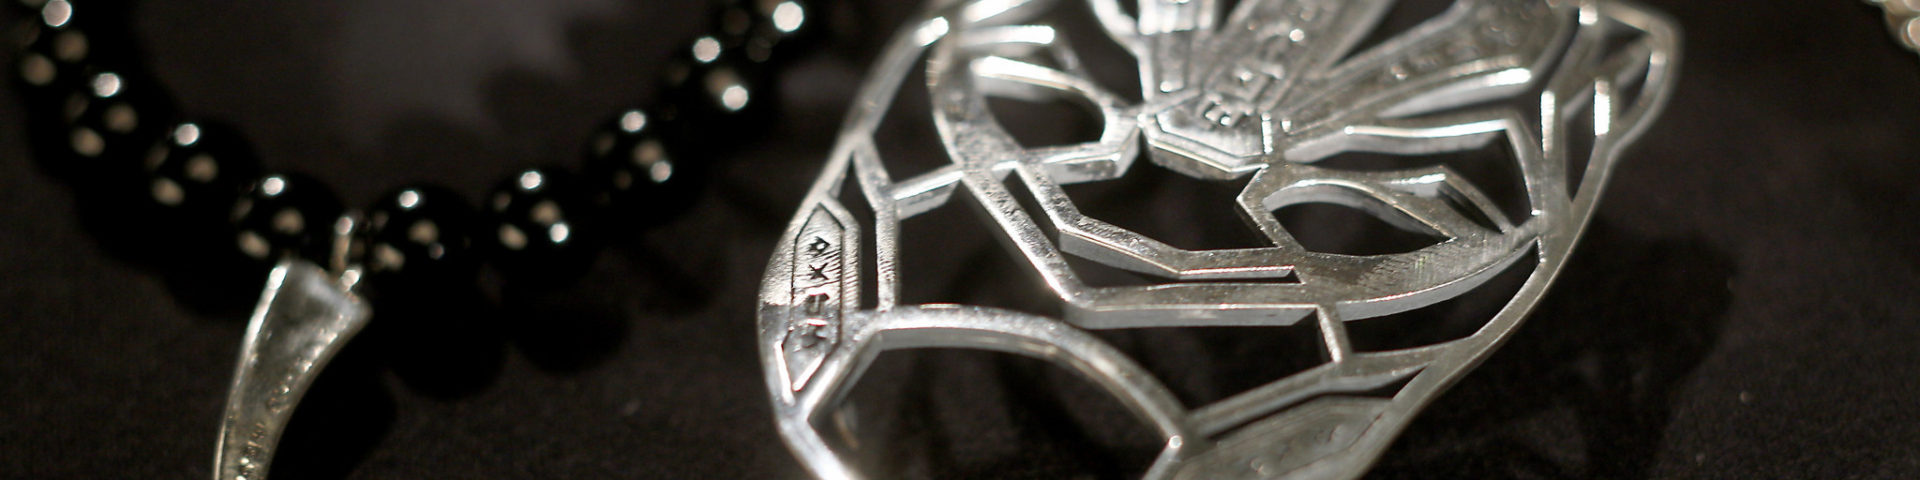 How To Choose The Best Design Of Stainless Steel Rings For Men